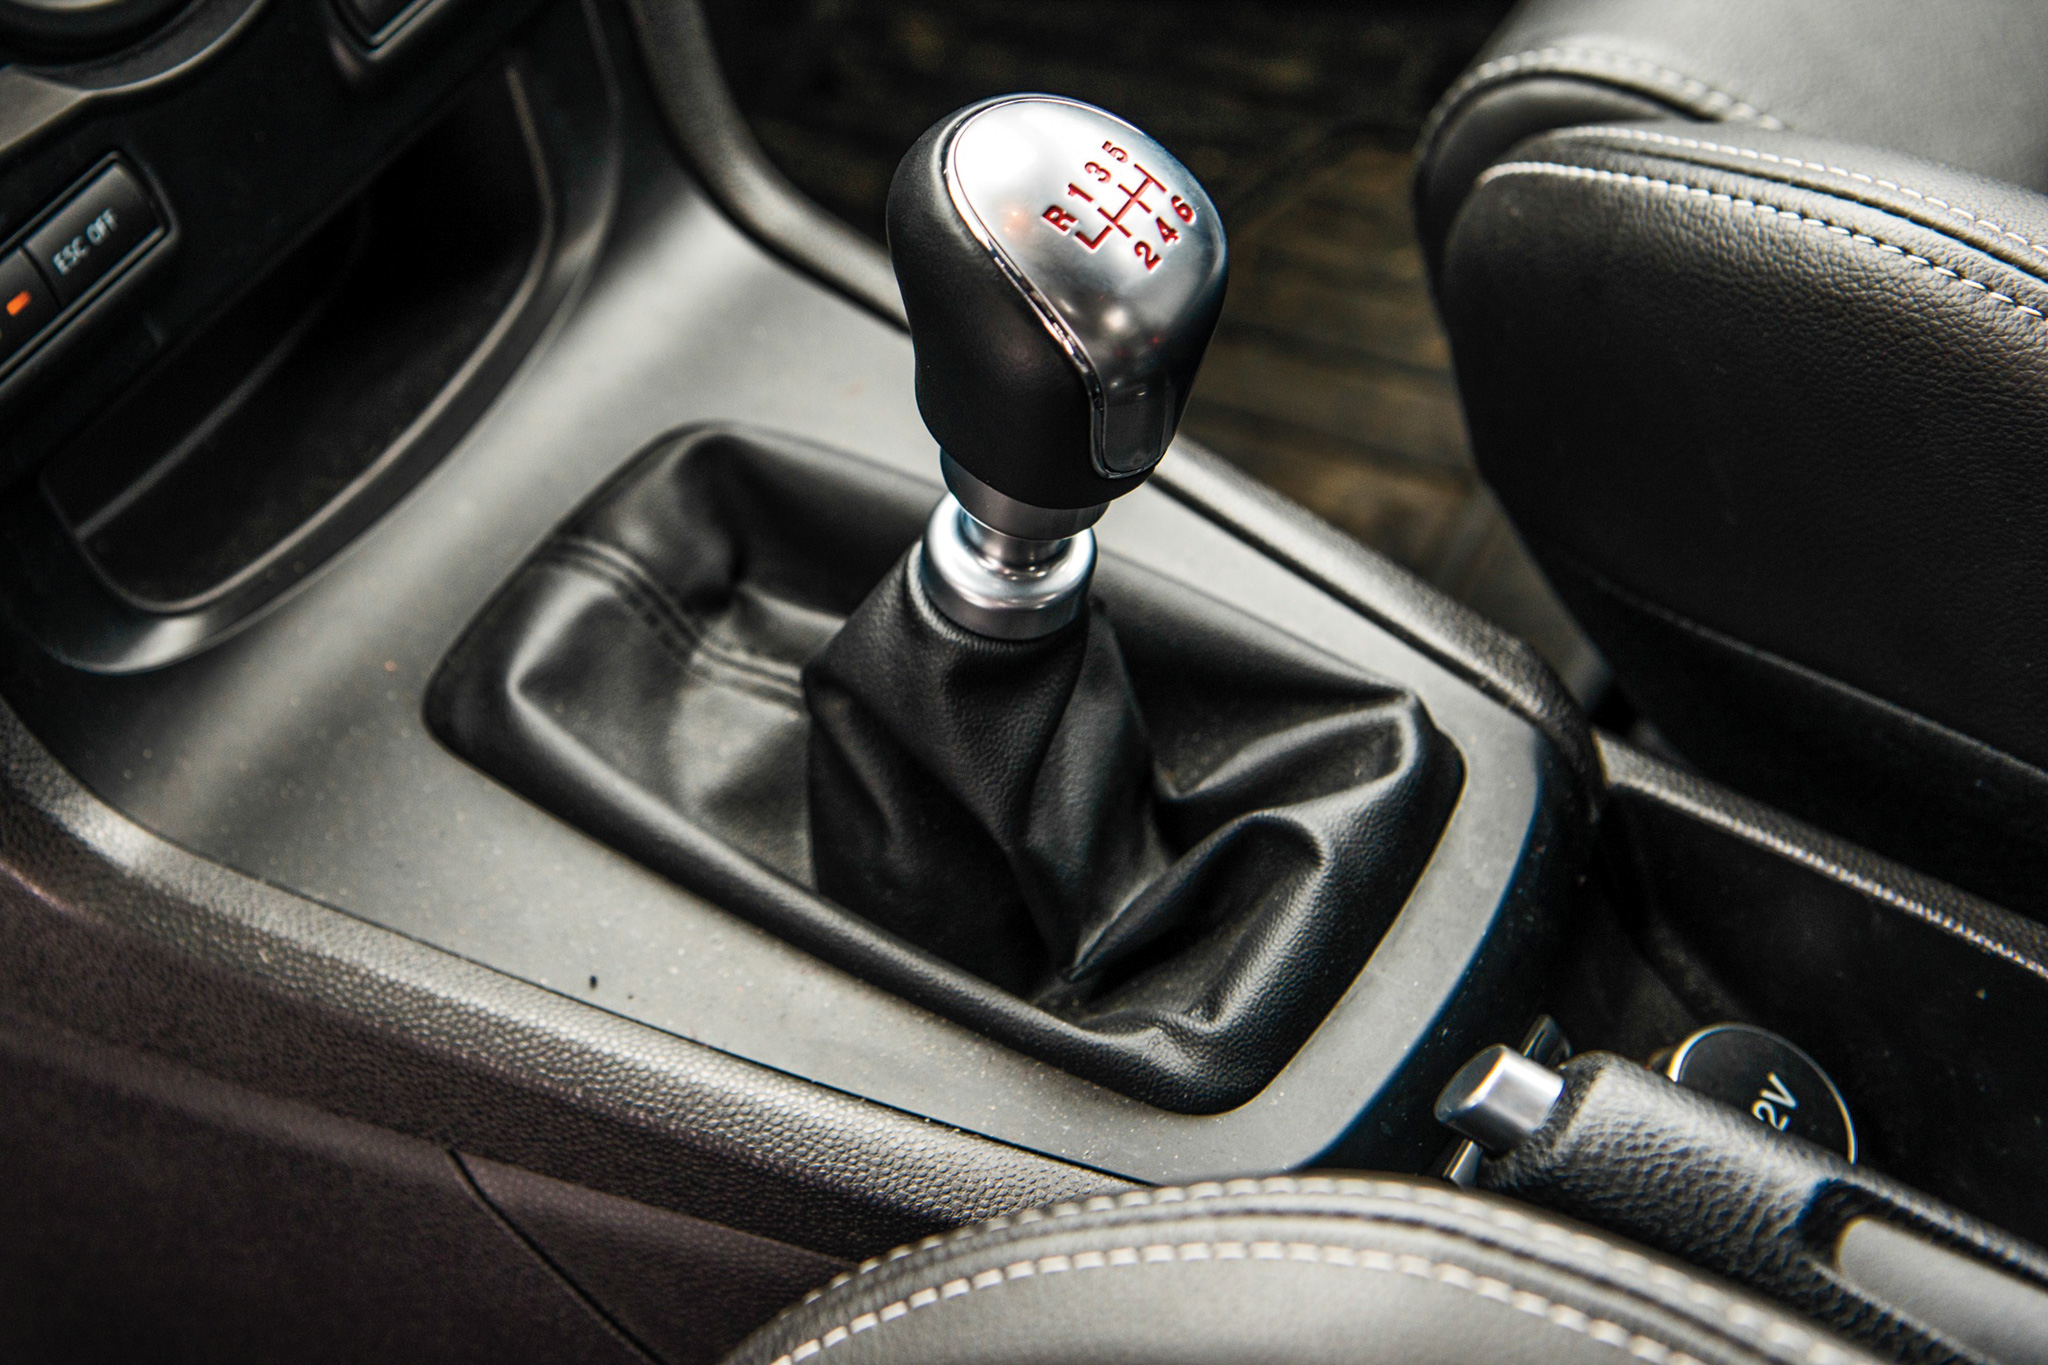 You won't find any dual clutches or paddle shifters here—a good old six-speed manual is the only transmission choice.